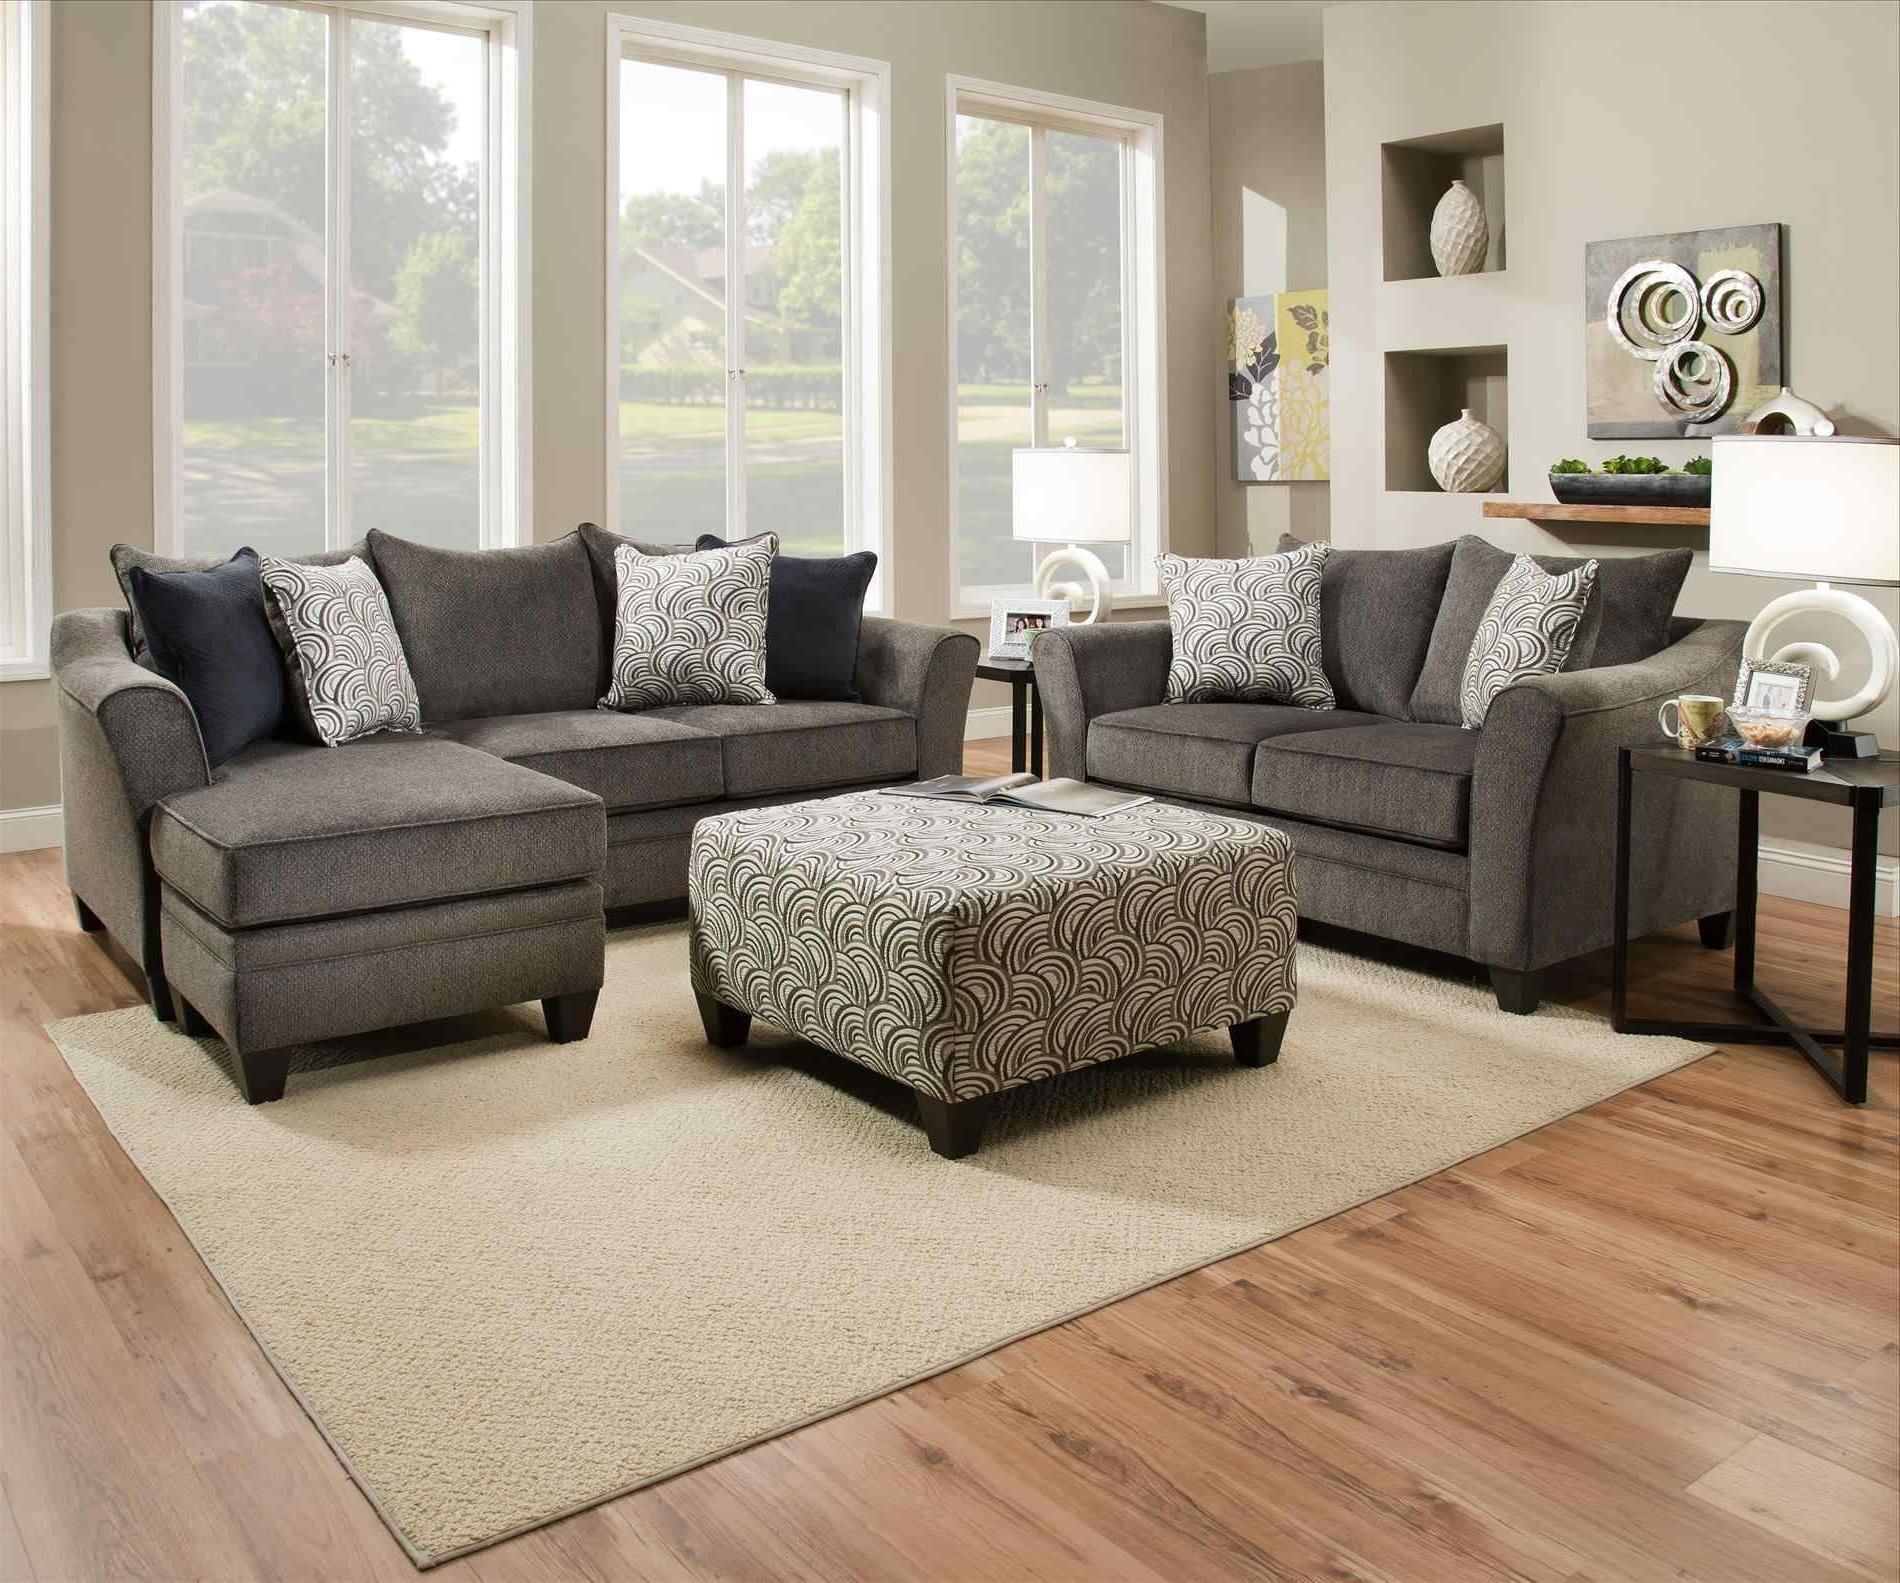 Overstock Sectional Sofas Regarding Most Current Sofas : Deep Sofa Sectional Sofas Online Apartment Sofa Overstock (View 6 of 15)